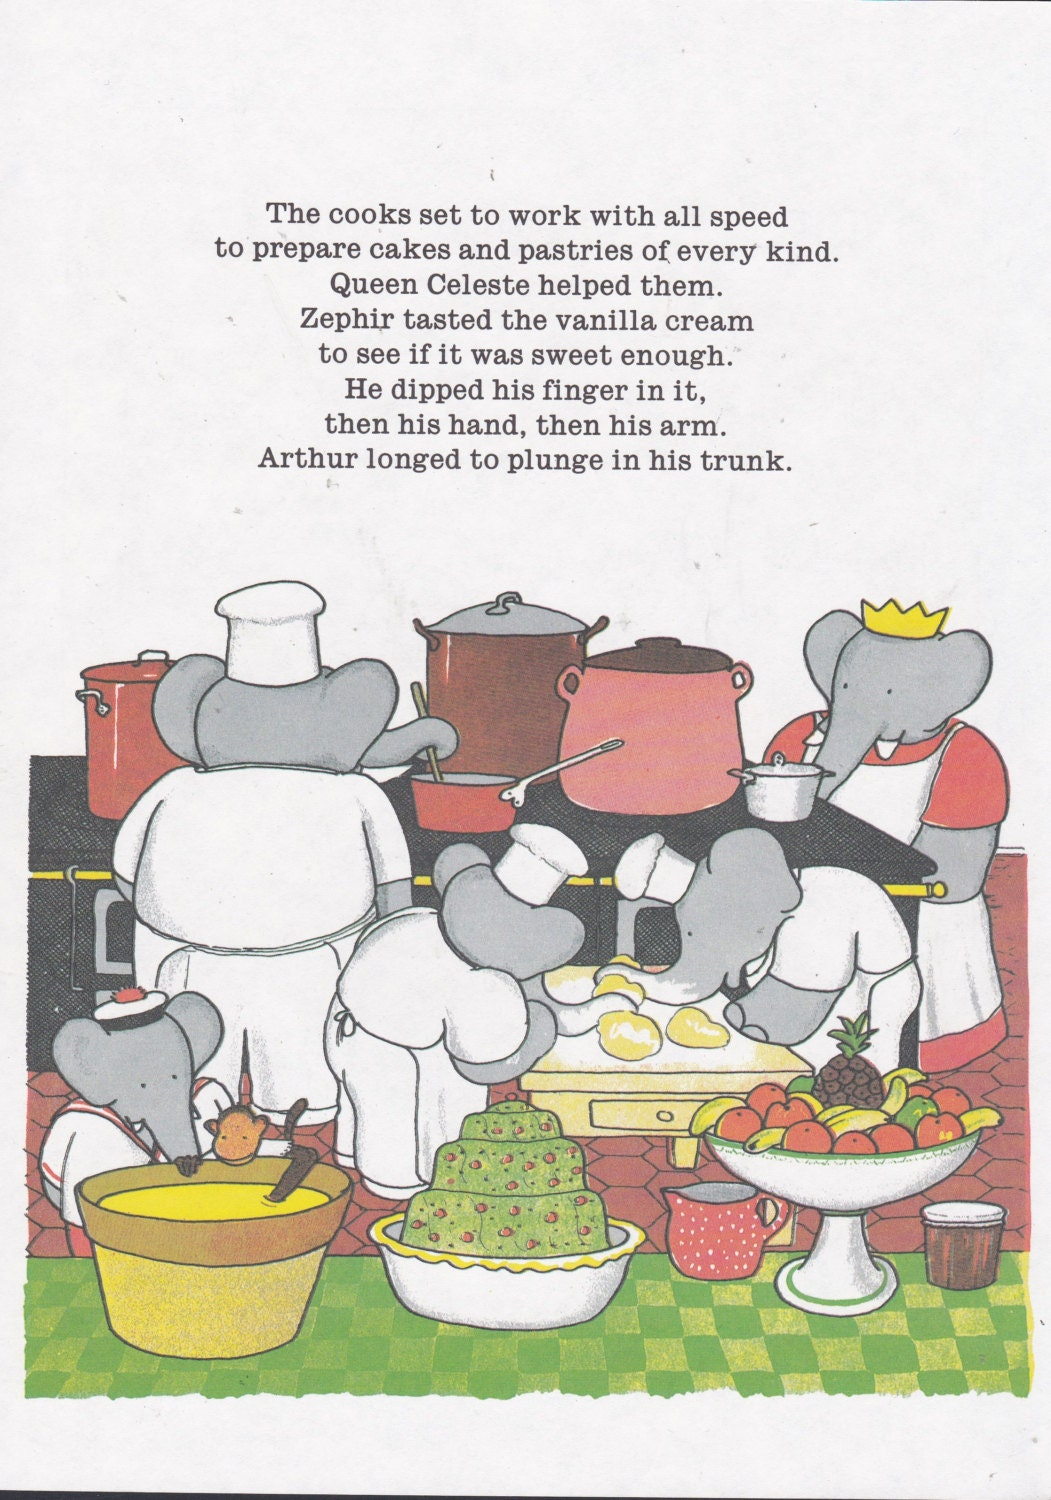 Babar the Elephant. Elephants Cook For Garden Party. Vintage Print Ready for Matting and Framing. Ideal for Nursery Decor. Jean de Brunhoff